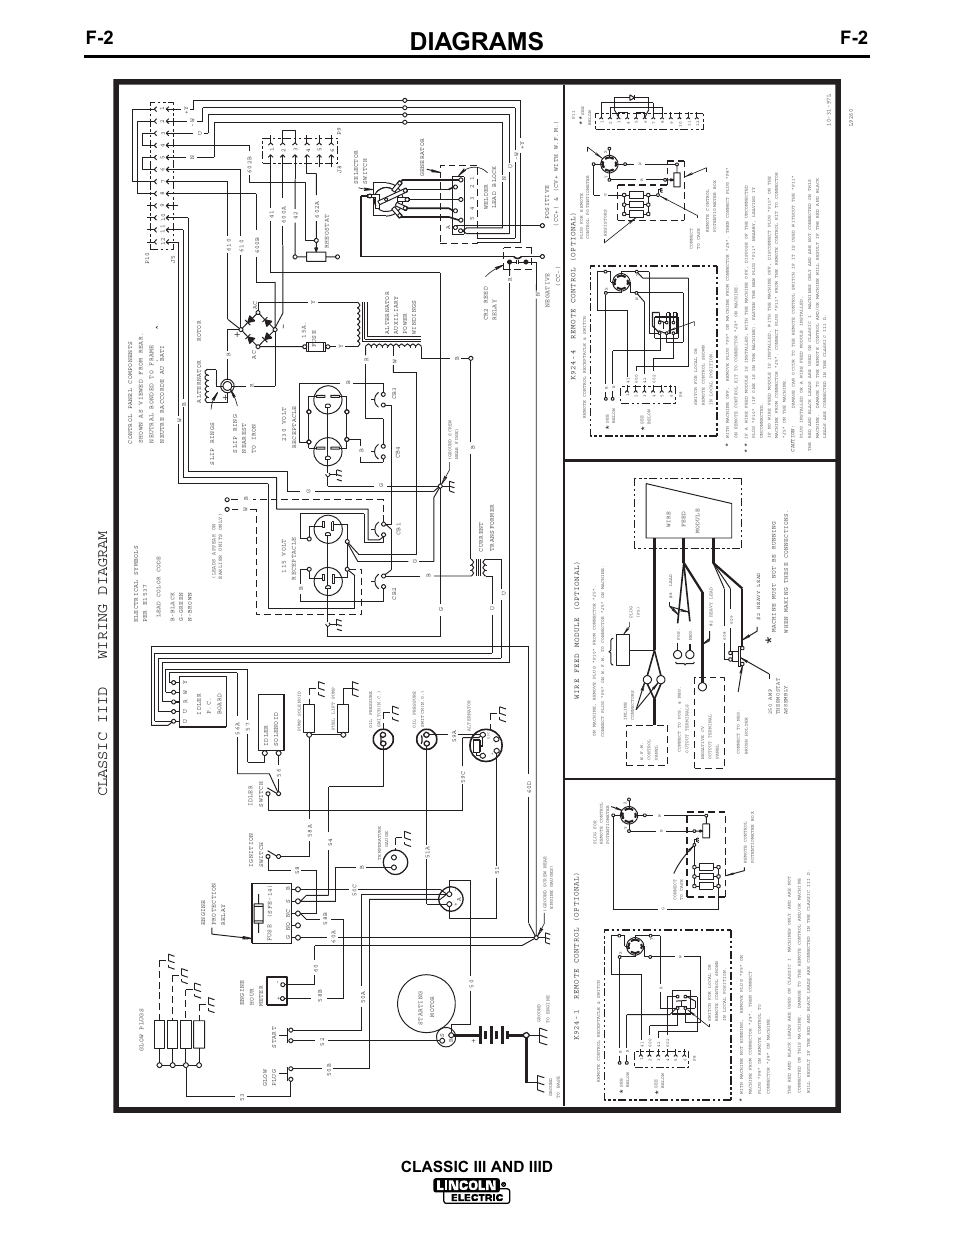 Lincoln Welder Starter Switch Wiring Diagram Schematics 225 Diagrams Classic Iii And Iiid